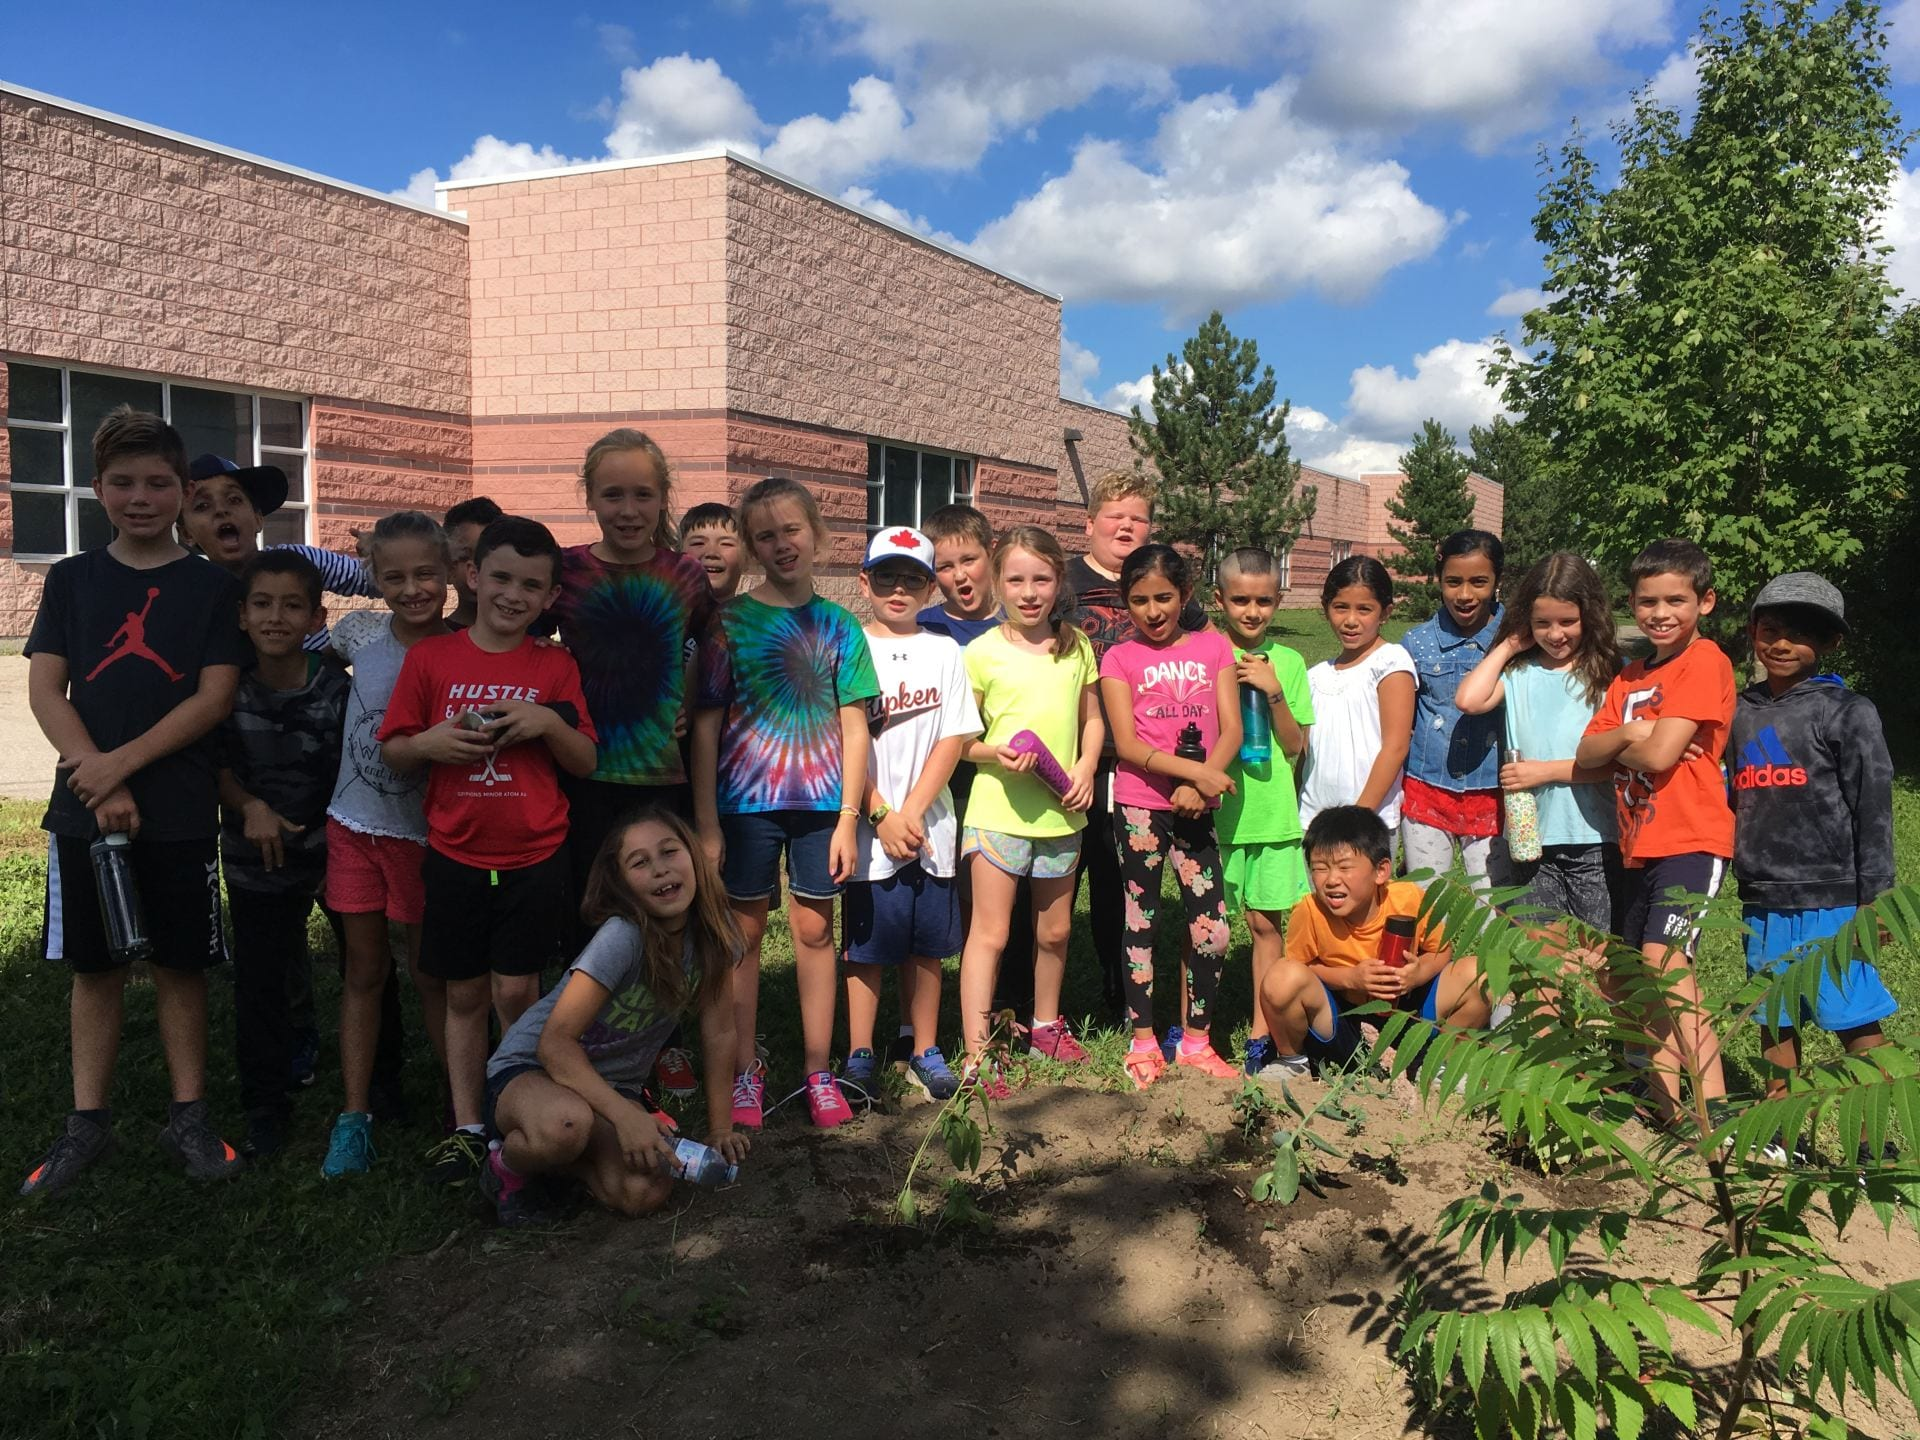 We are a group of Grade 4 Students from Guelph Ontario Canada.  We would love to connect with other students from around the world!  Visit our blogs and please leave us questions or comments!